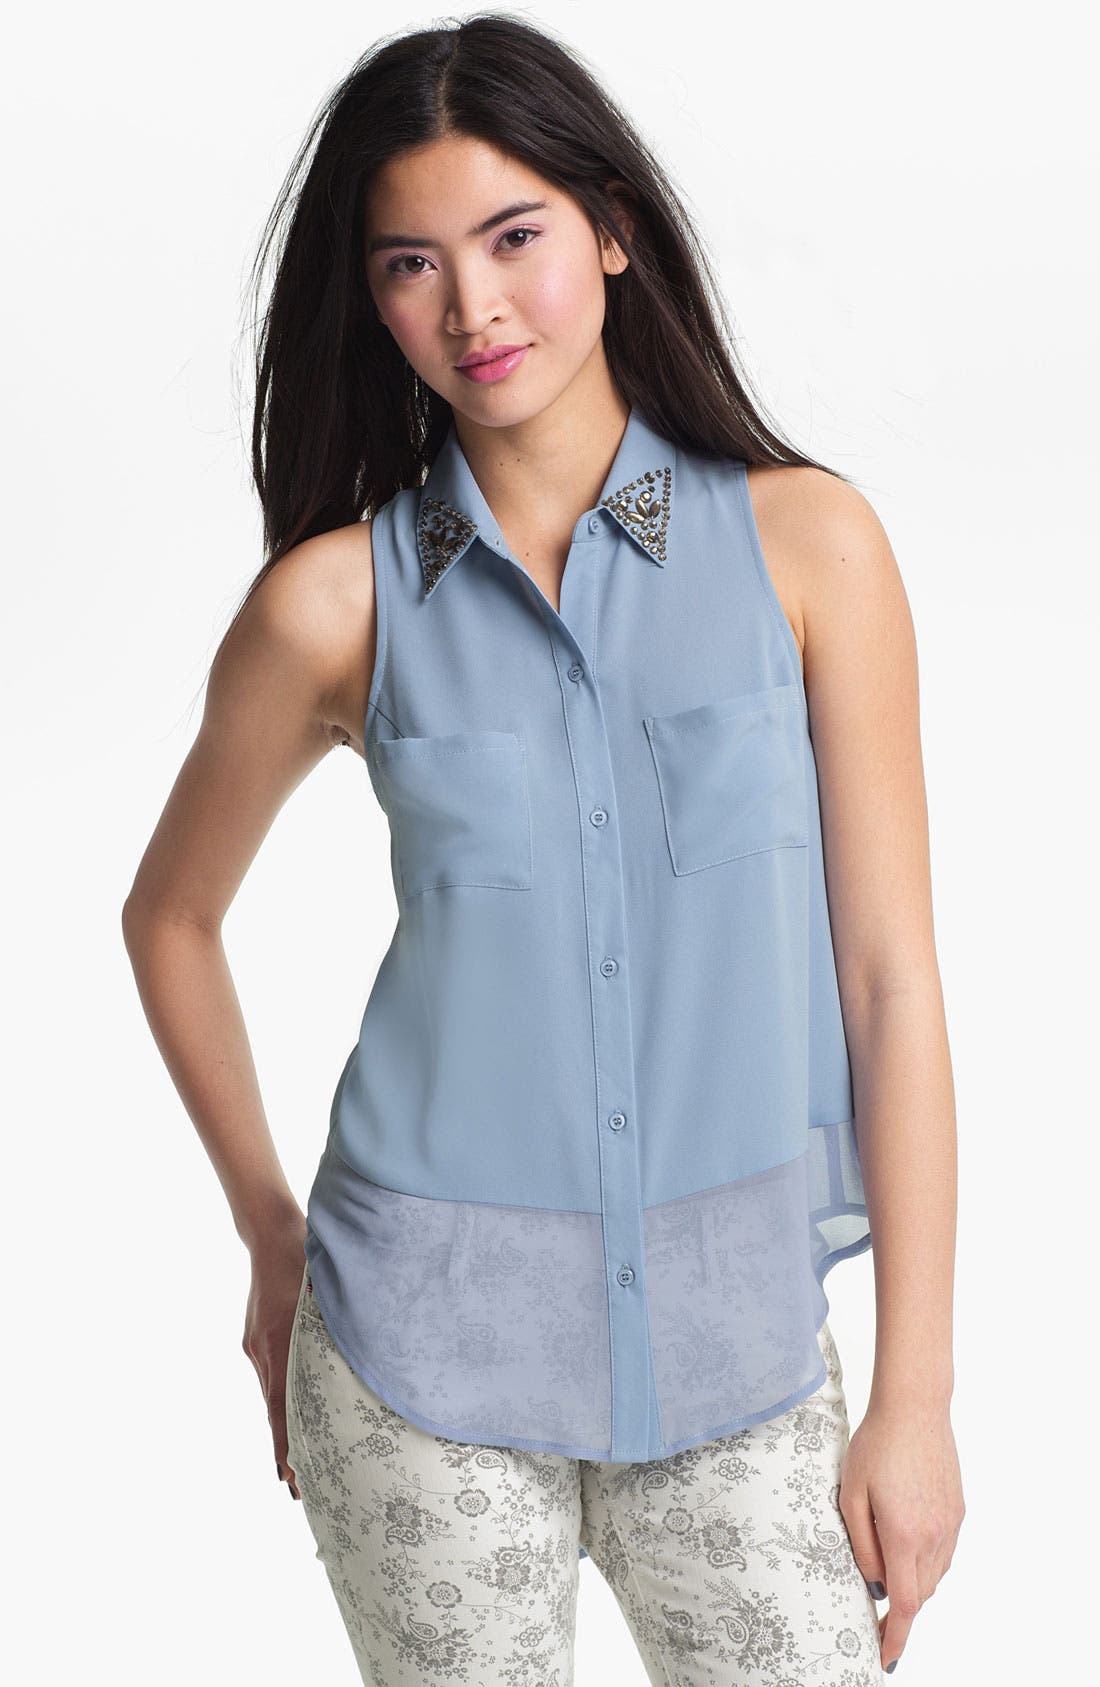 Alternate Image 1 Selected - Lush Stud Collar Sleeveless Shirt (Juniors)